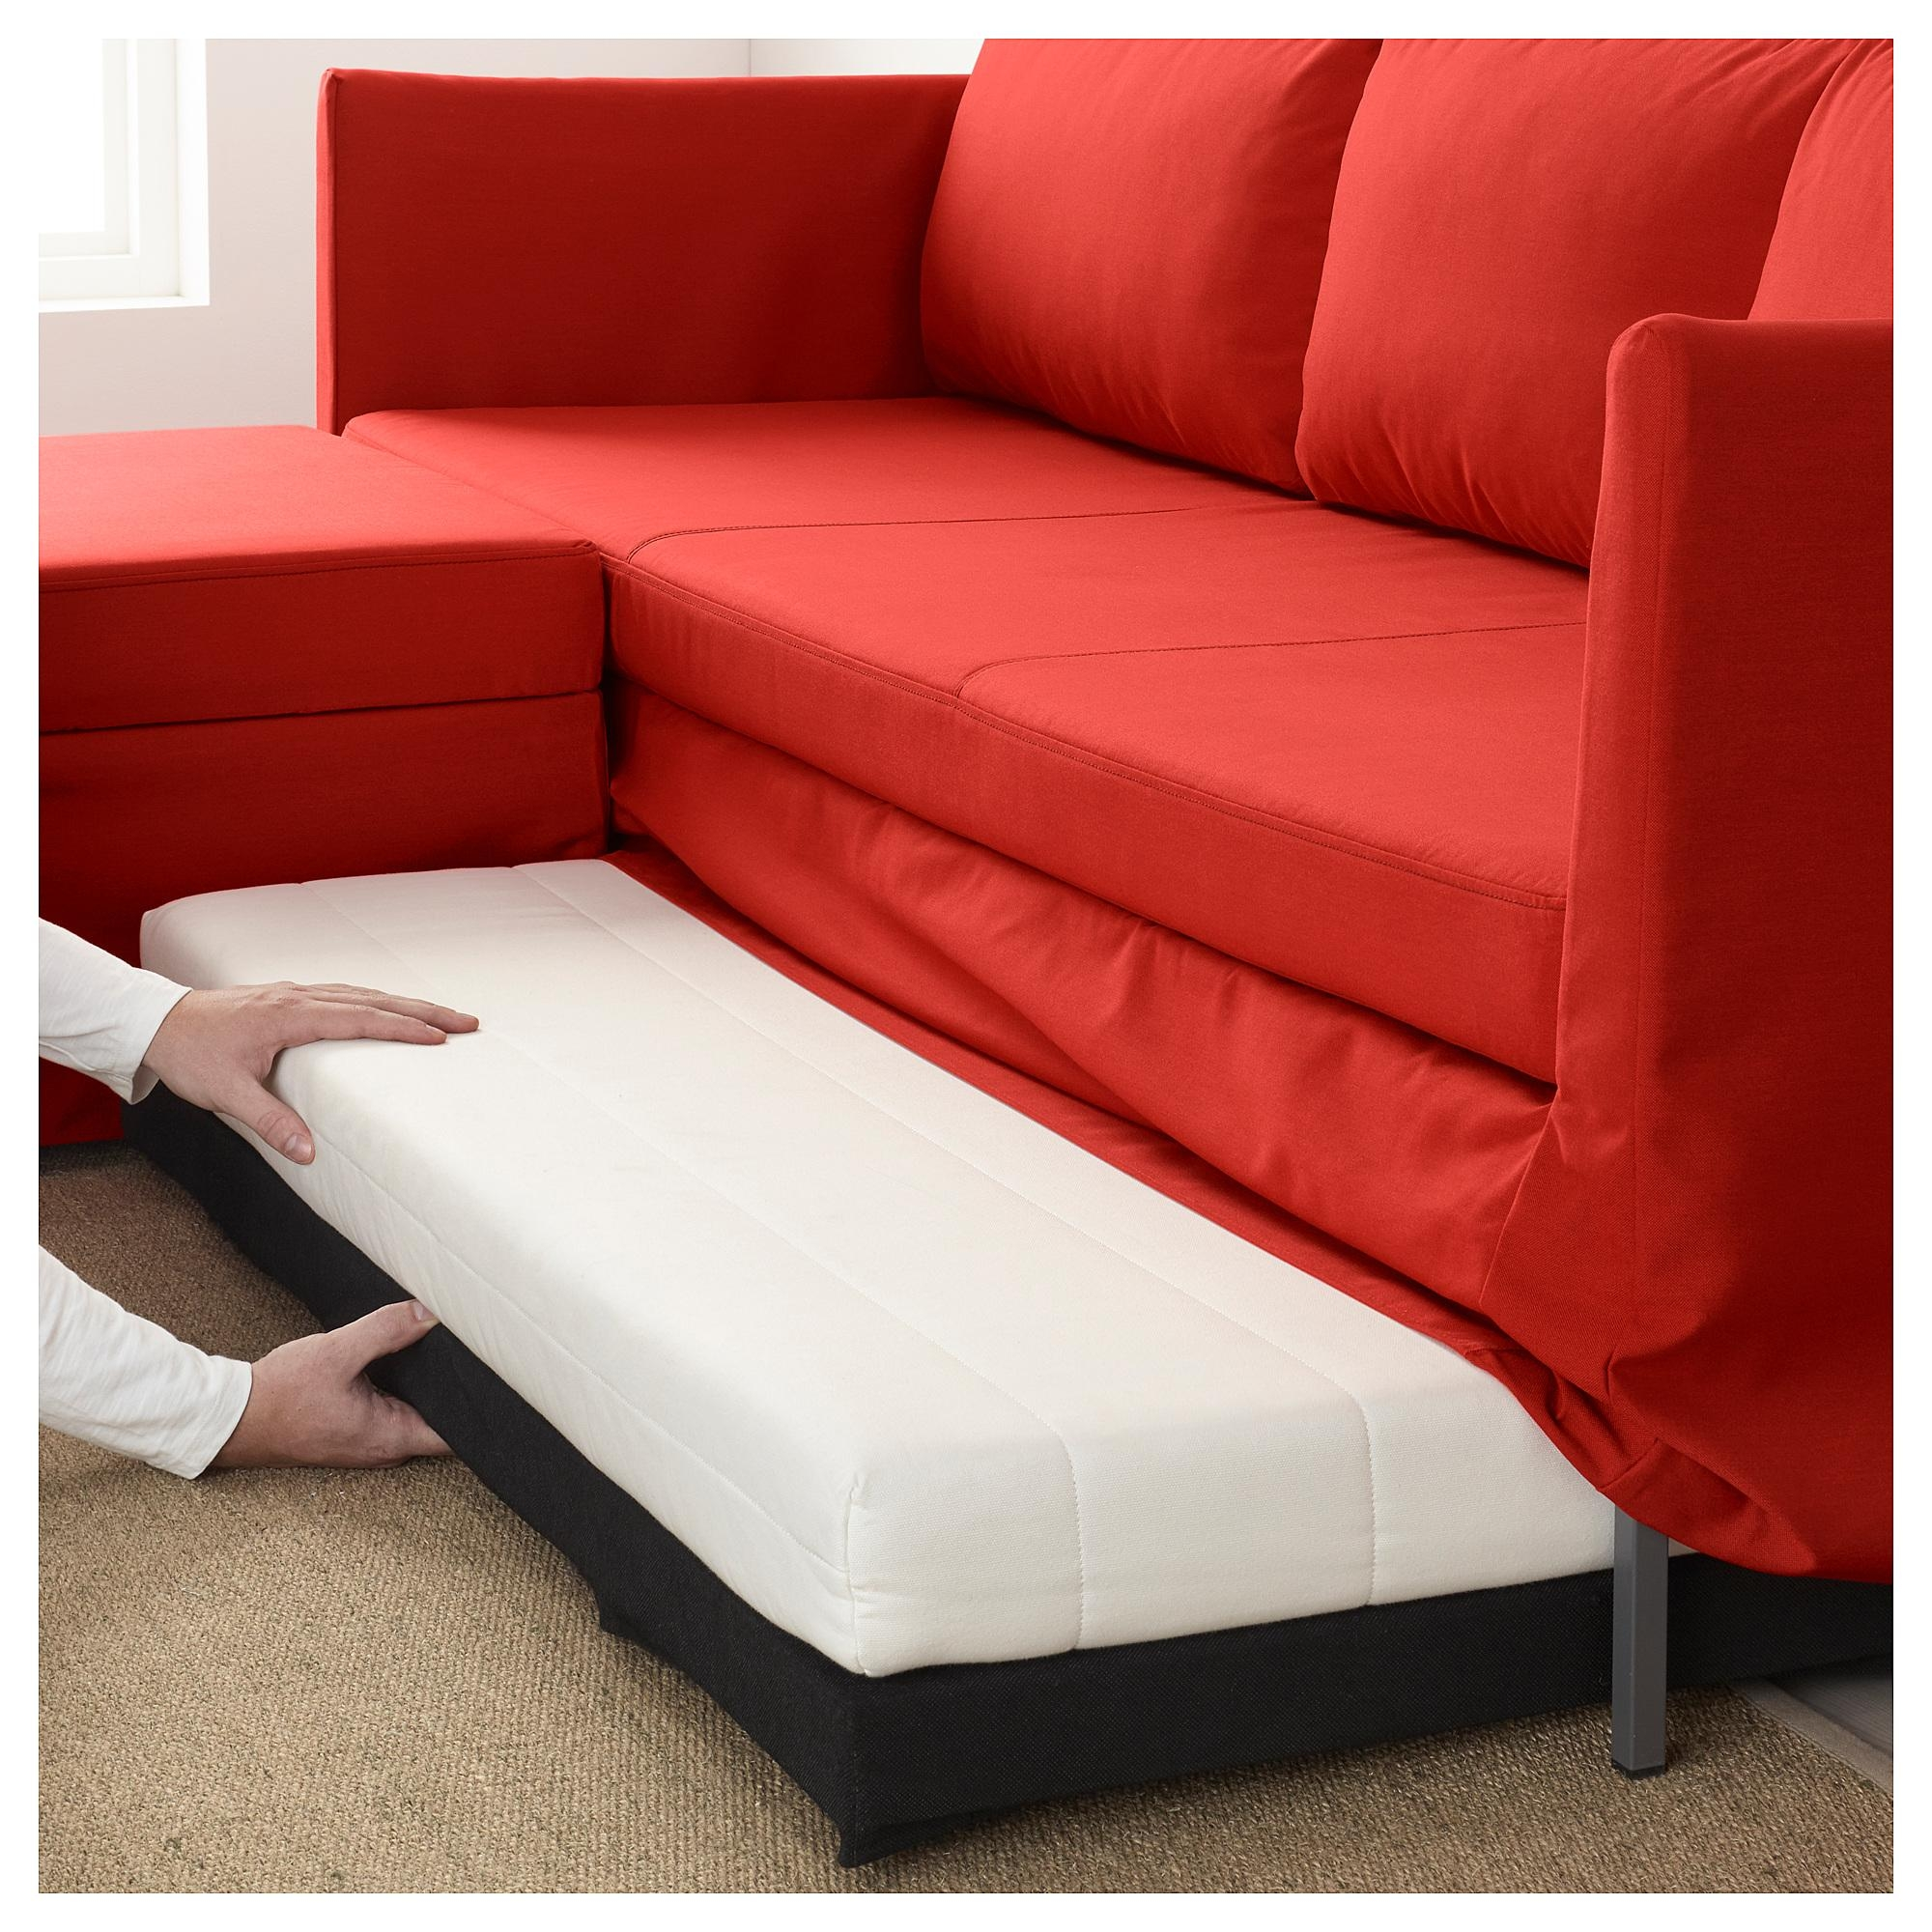 Bråthult Corner Sofa Bed Vissle Red/orange – Ikea With Red Sofa Beds Ikea (Image 3 of 20)